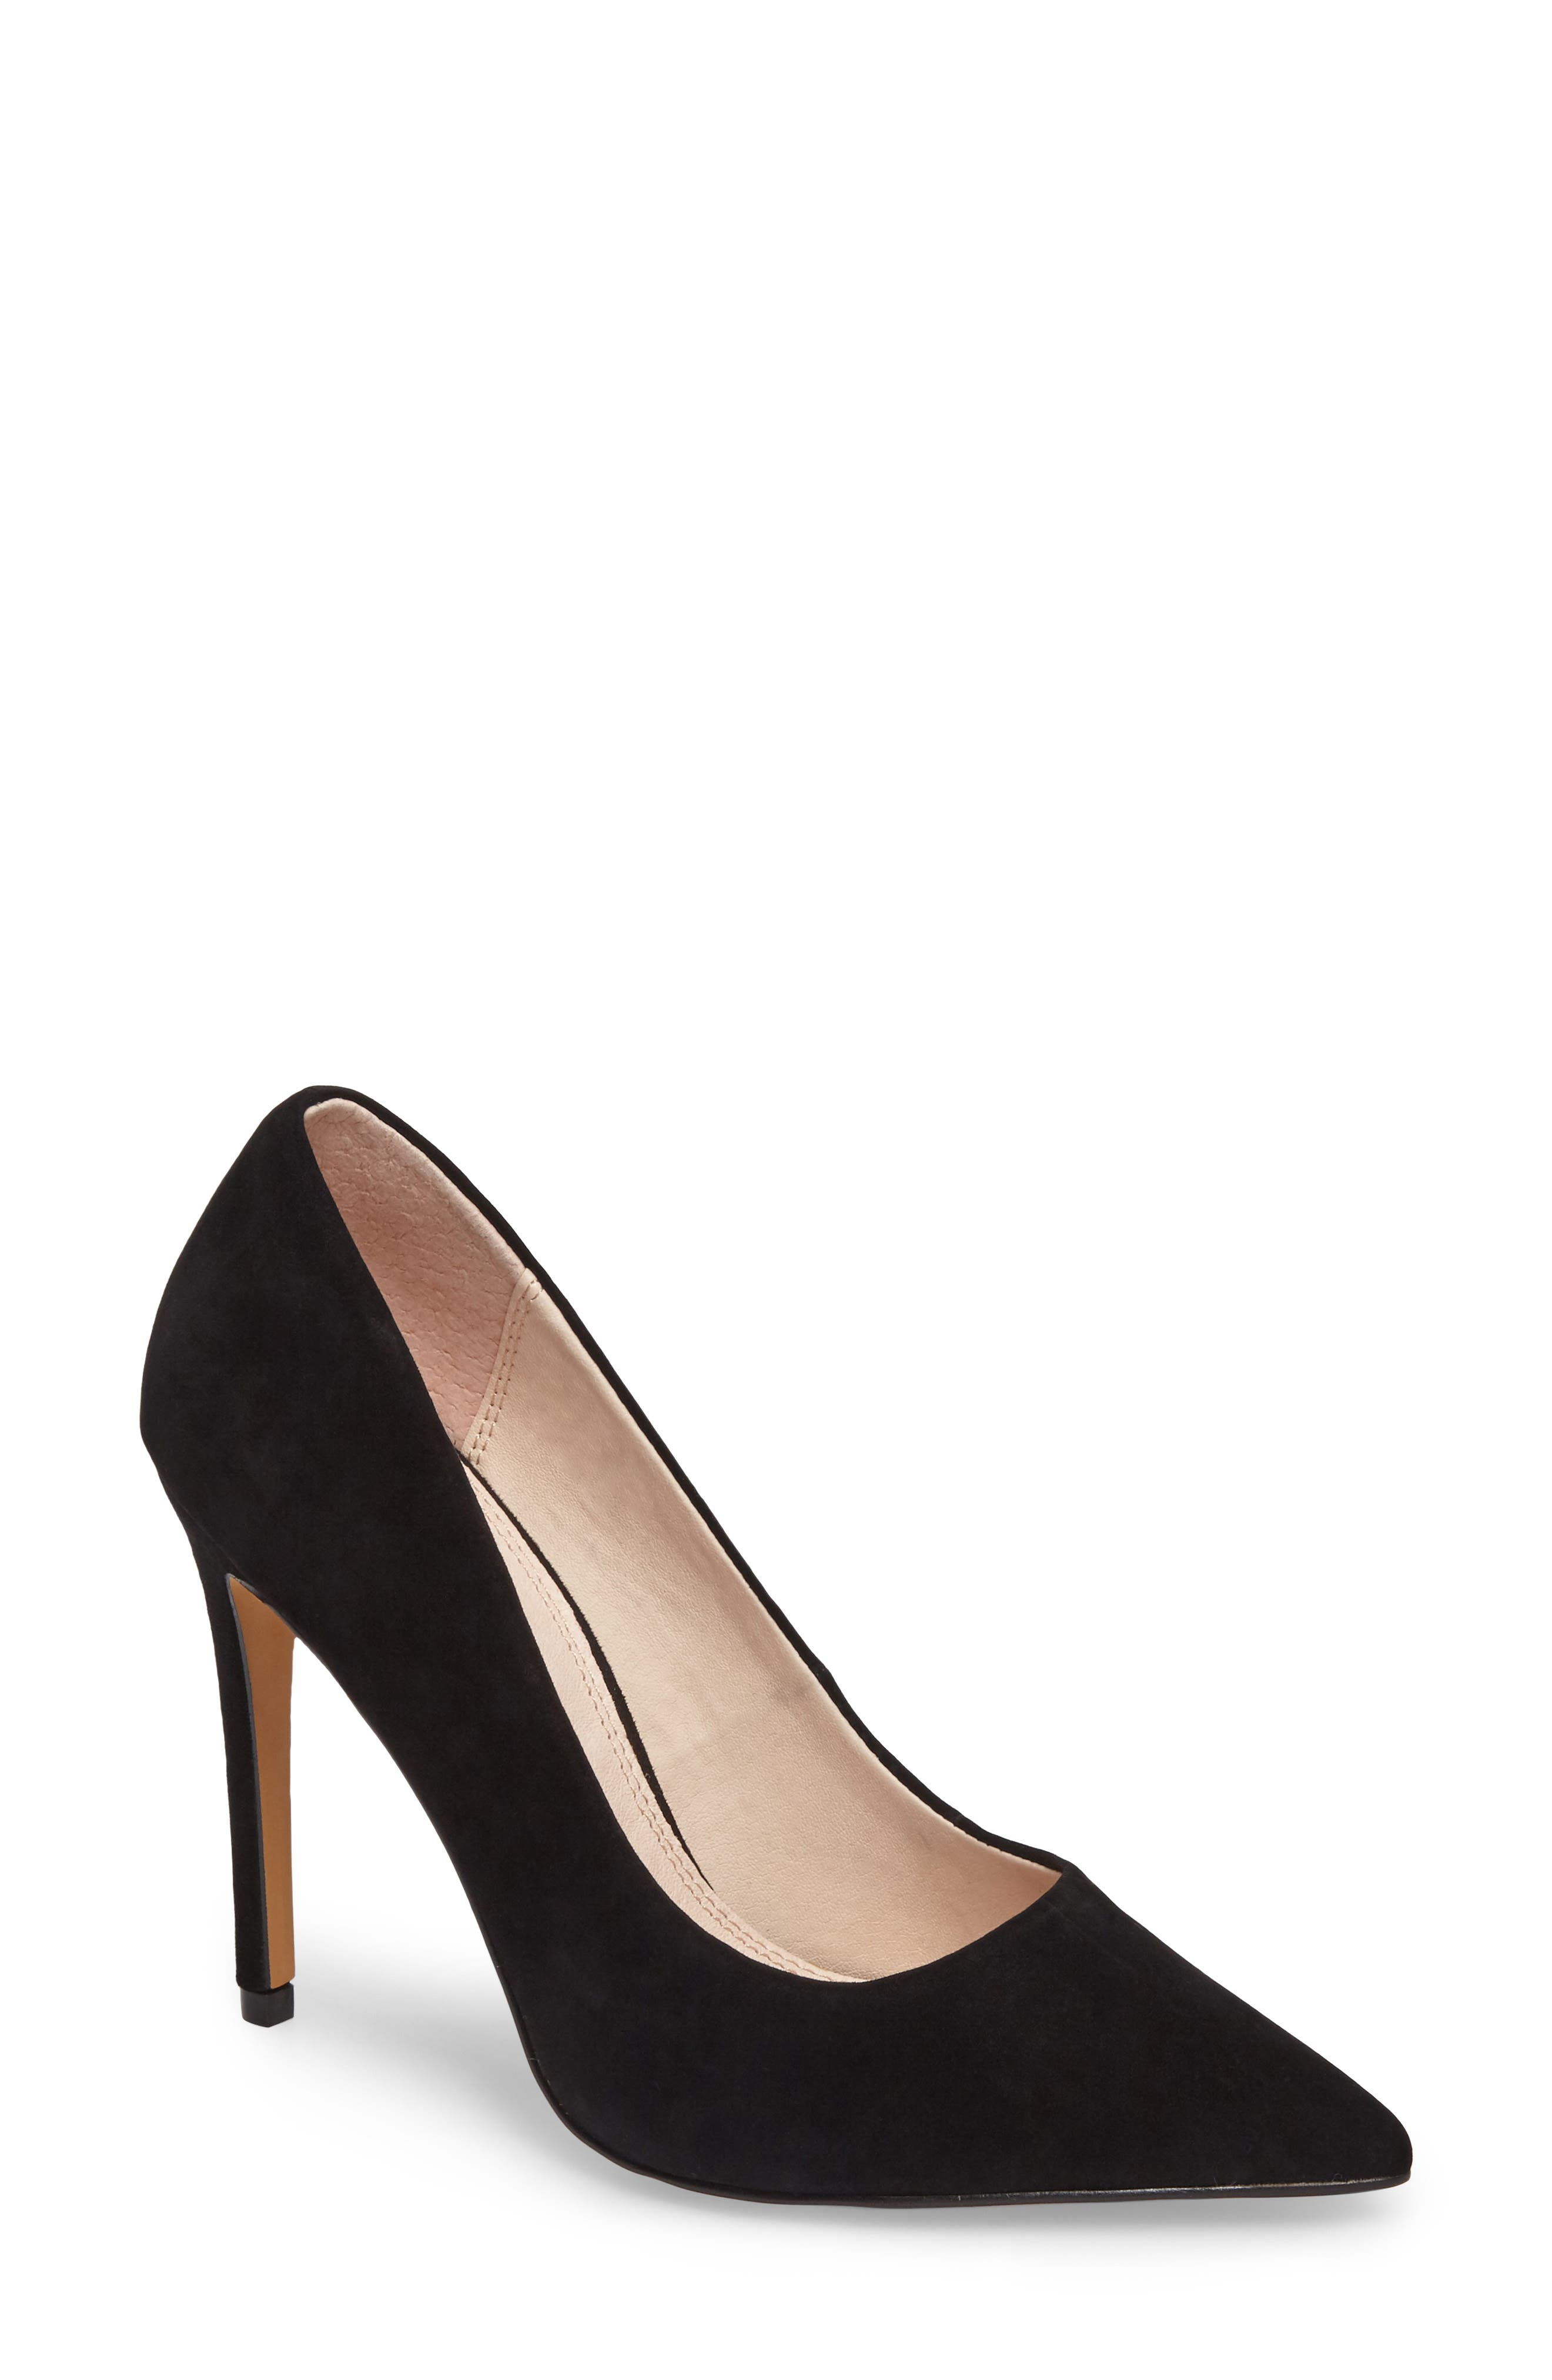 Grammer Pointy Toe Pump,                             Main thumbnail 1, color,                             BLACK LEATHER